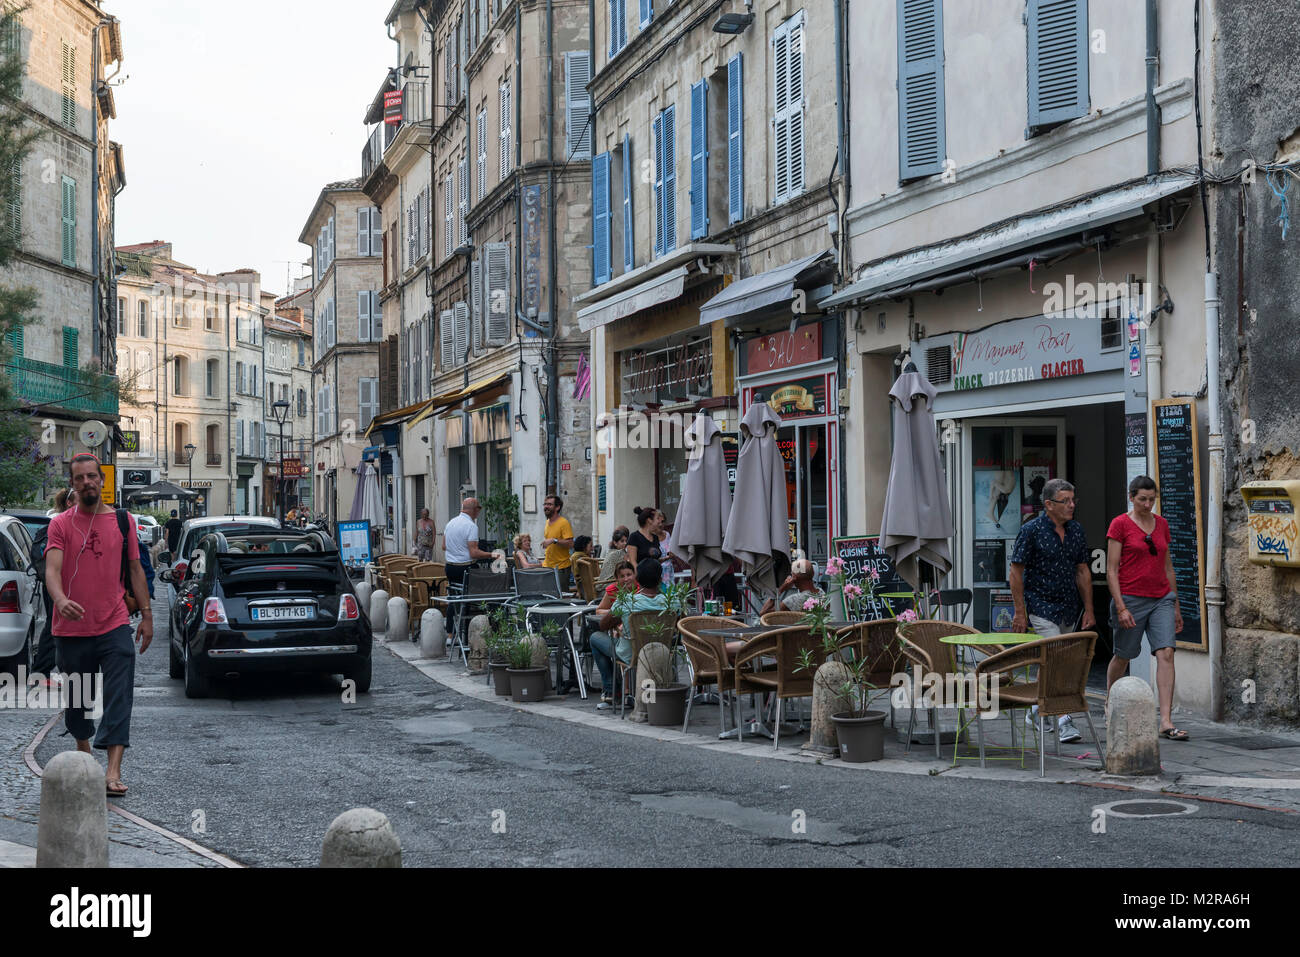 street in the old town of avignon vaucluse provence france stock photo 173845913 alamy. Black Bedroom Furniture Sets. Home Design Ideas